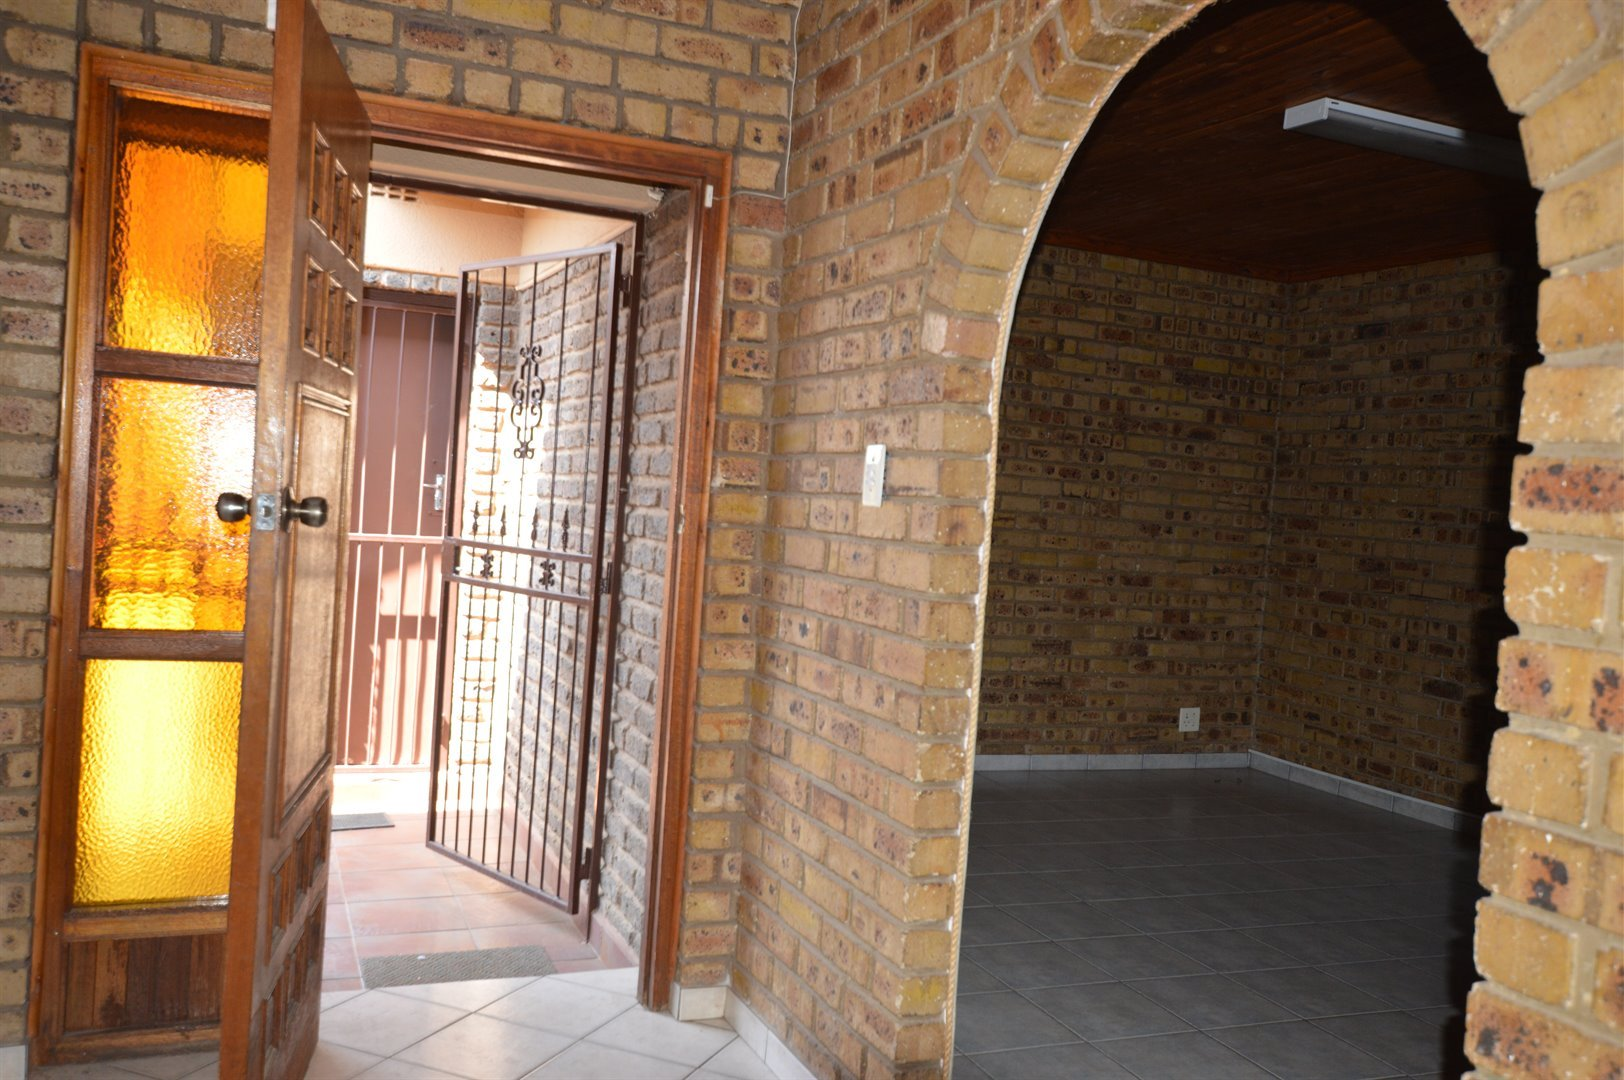 Vanderbijlpark Se 2 property for sale. Ref No: 13623209. Picture no 35